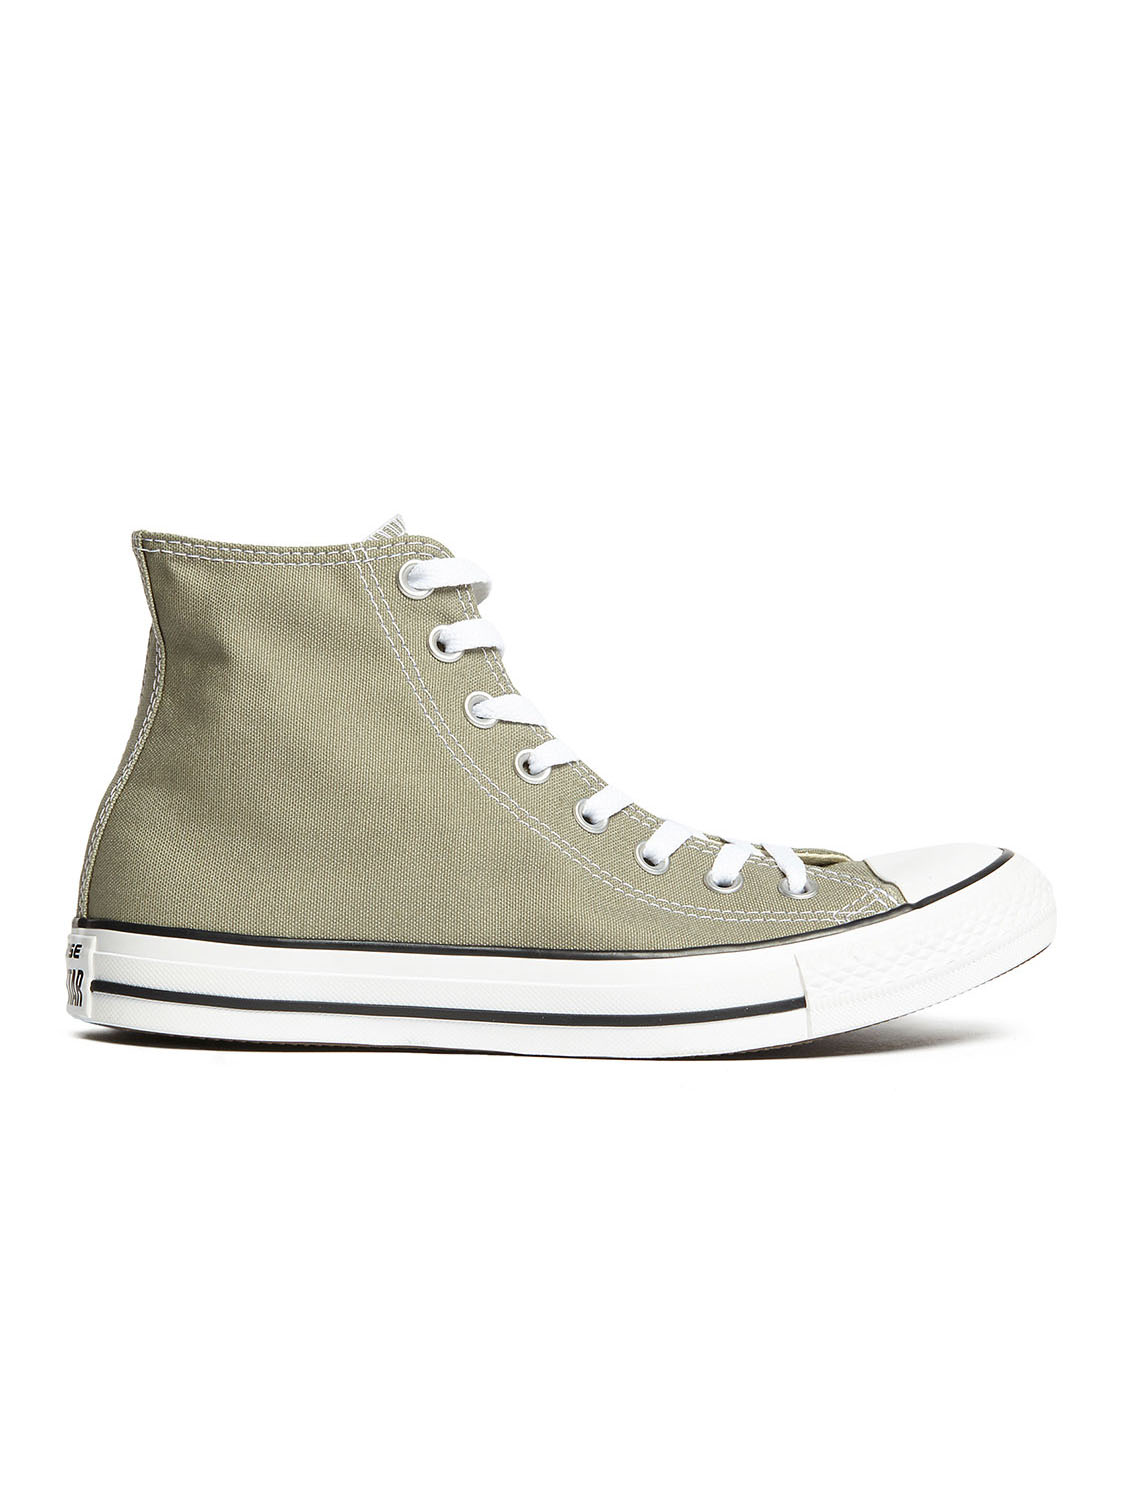 bd5b36bb87d6 Converse - Canvas sneakers - Ibox